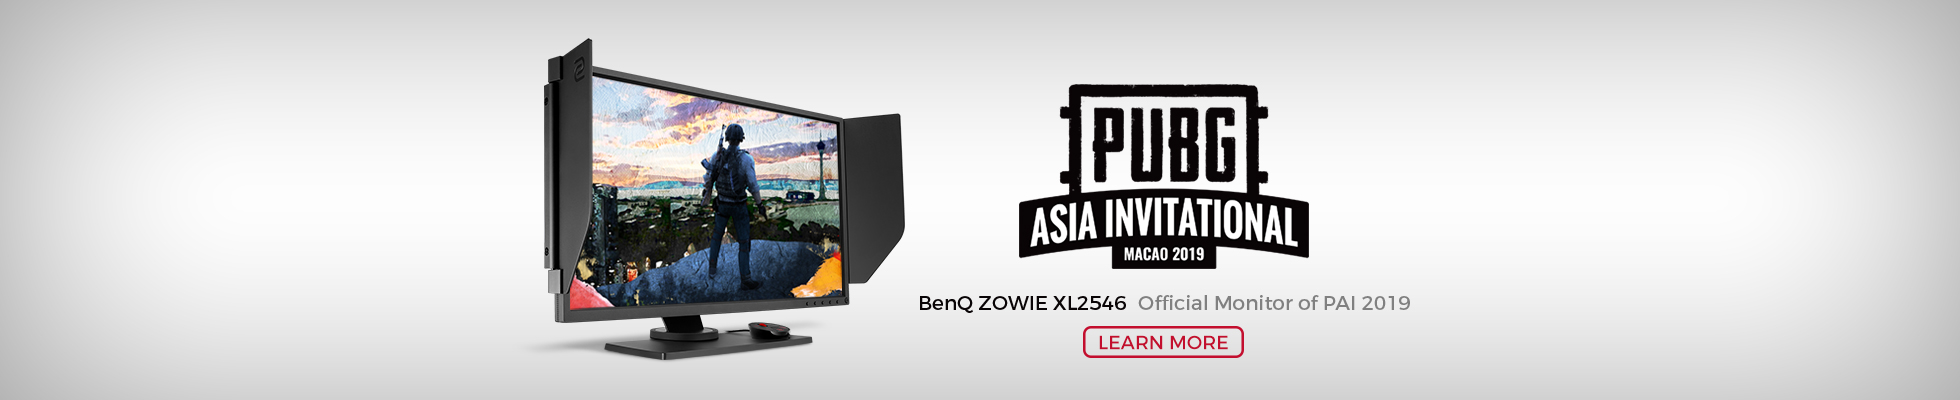 ZOWIE XL2546 240Hz Gaming monitor